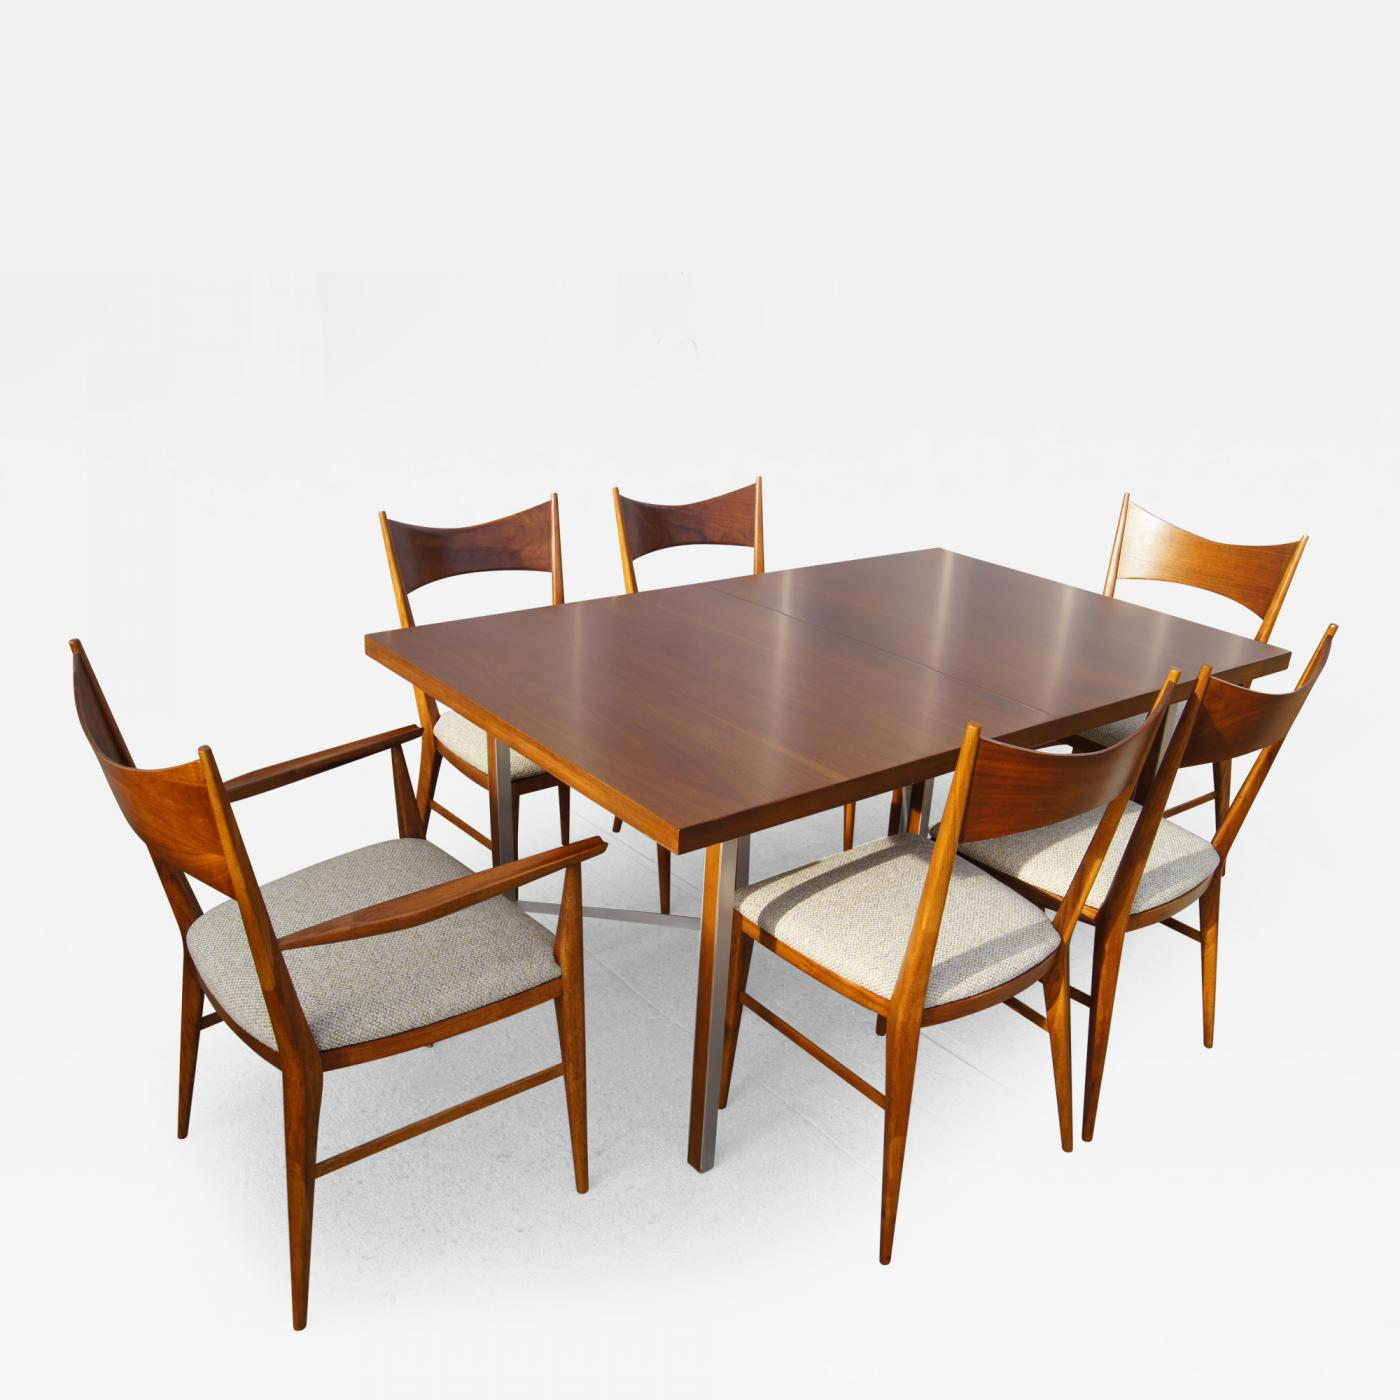 paul mccobb irwin group walnut dining table and six chairs by paul